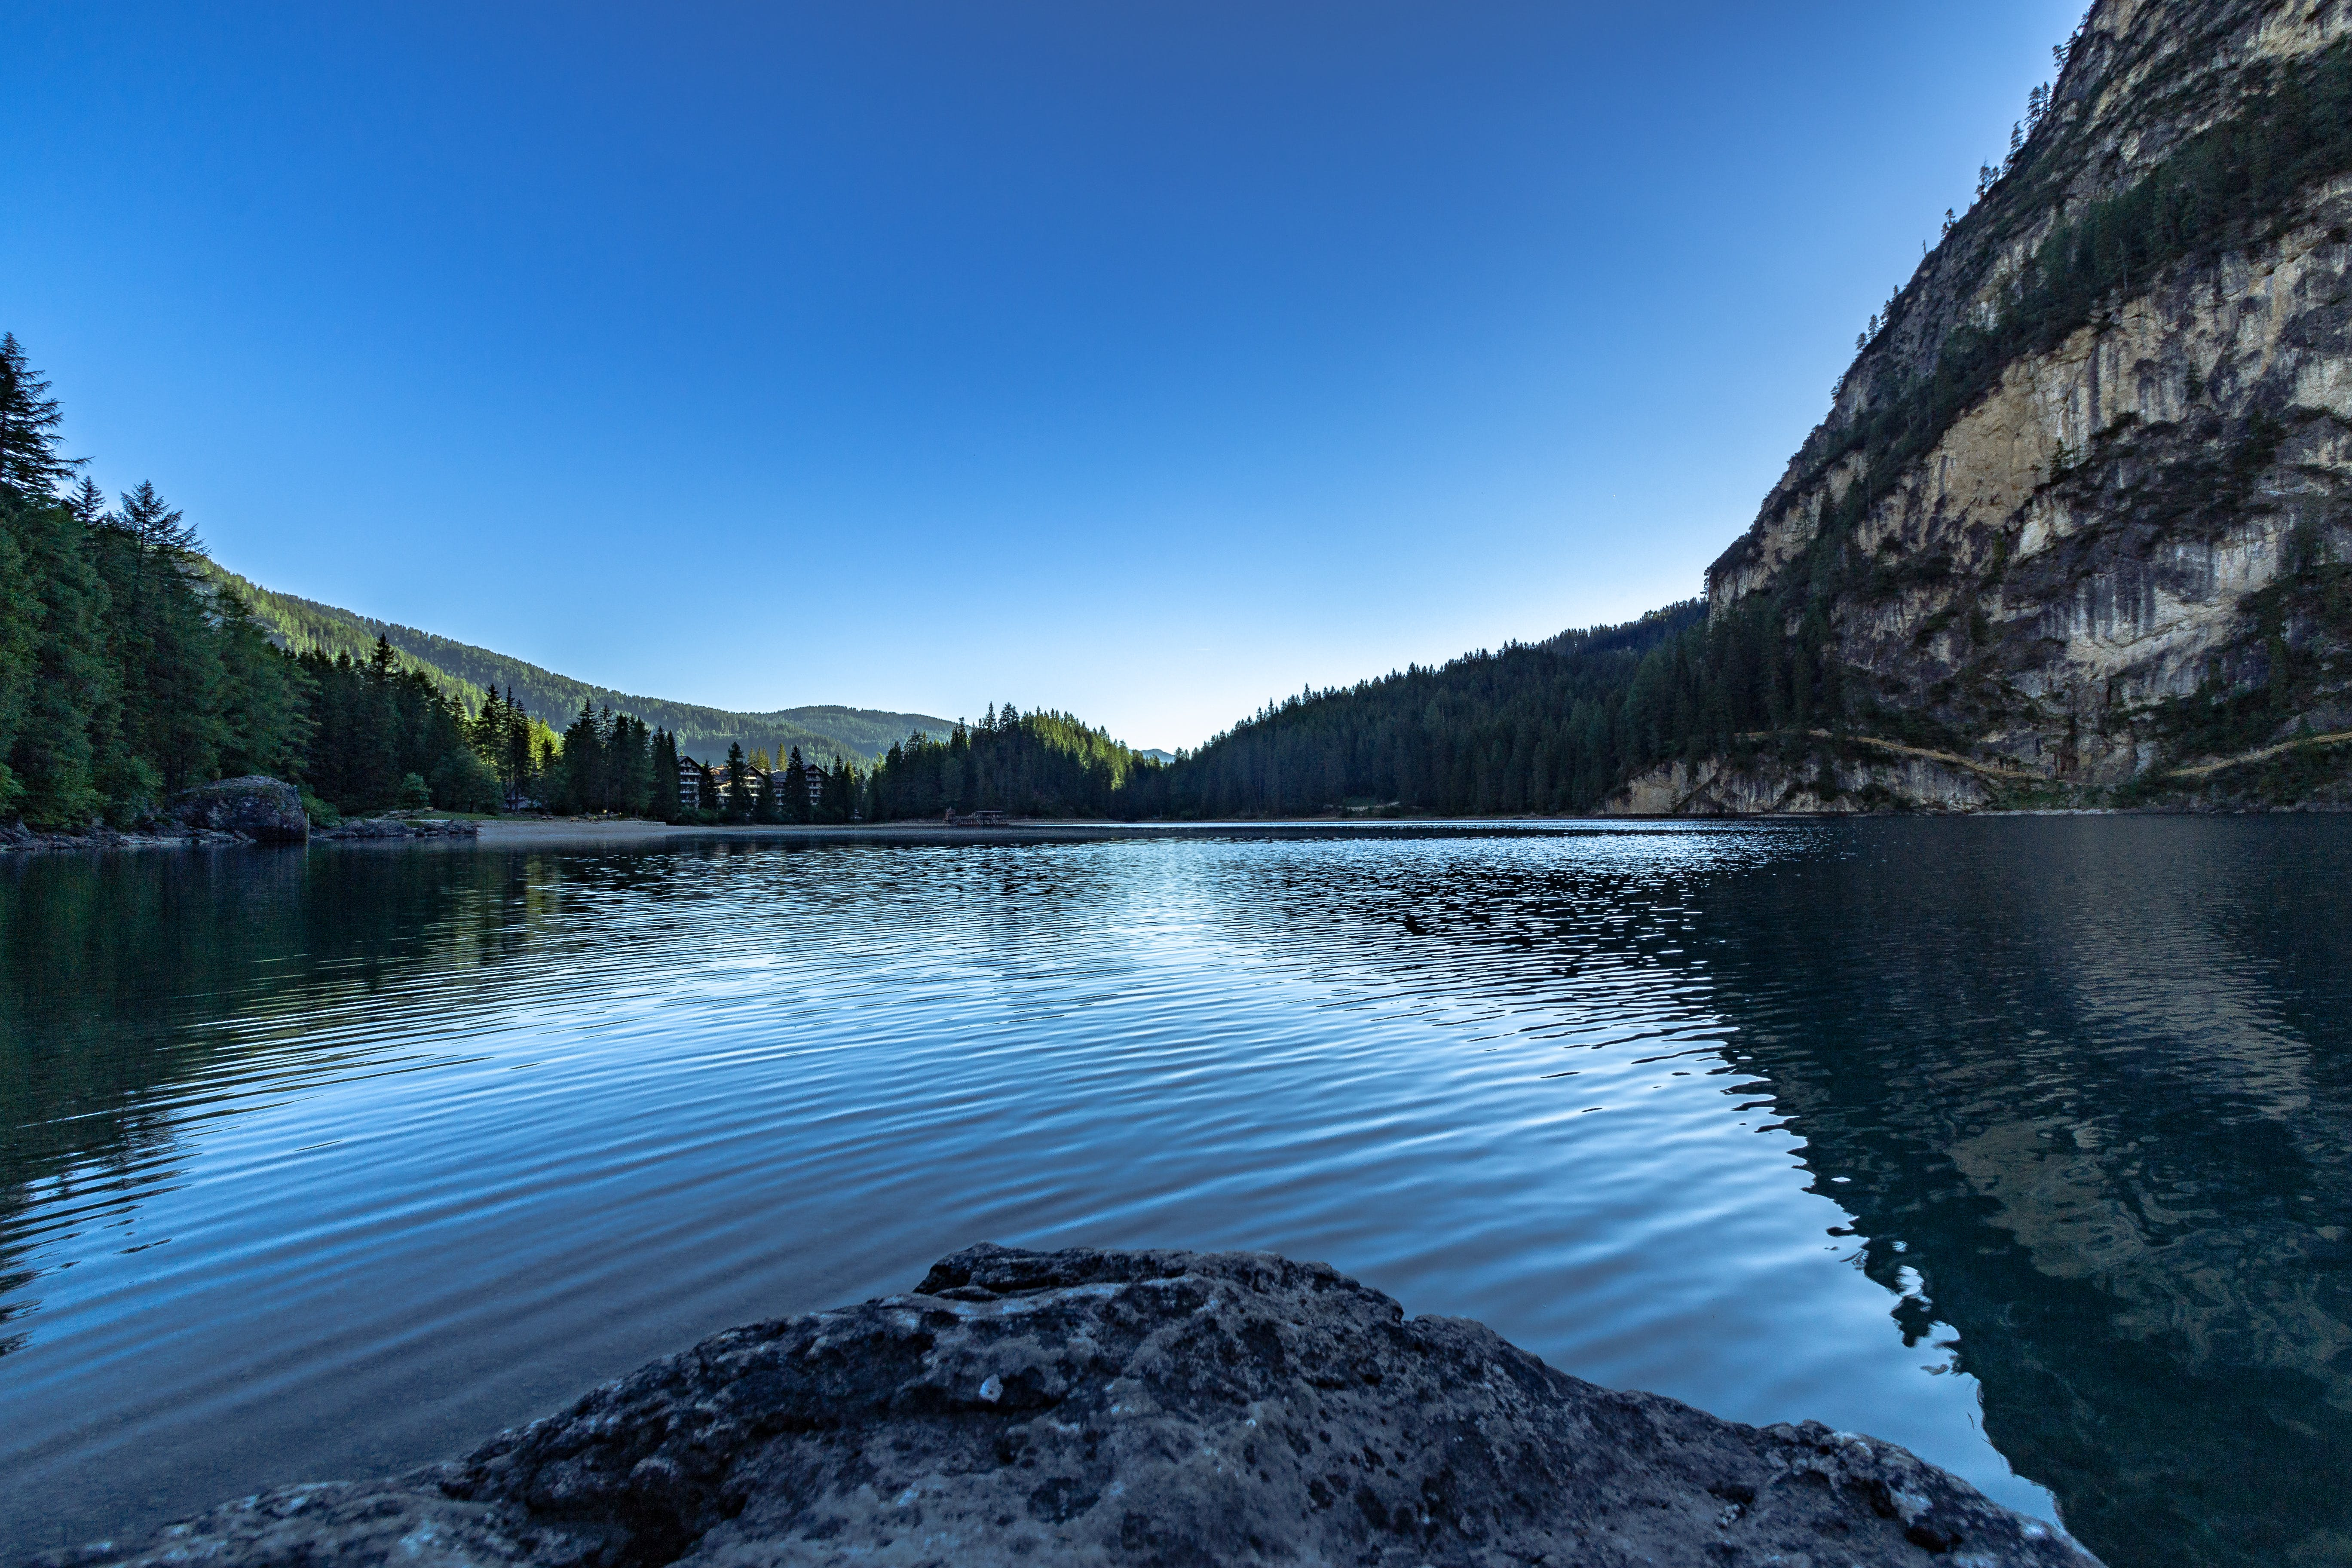 Lake in Middle of Mountain